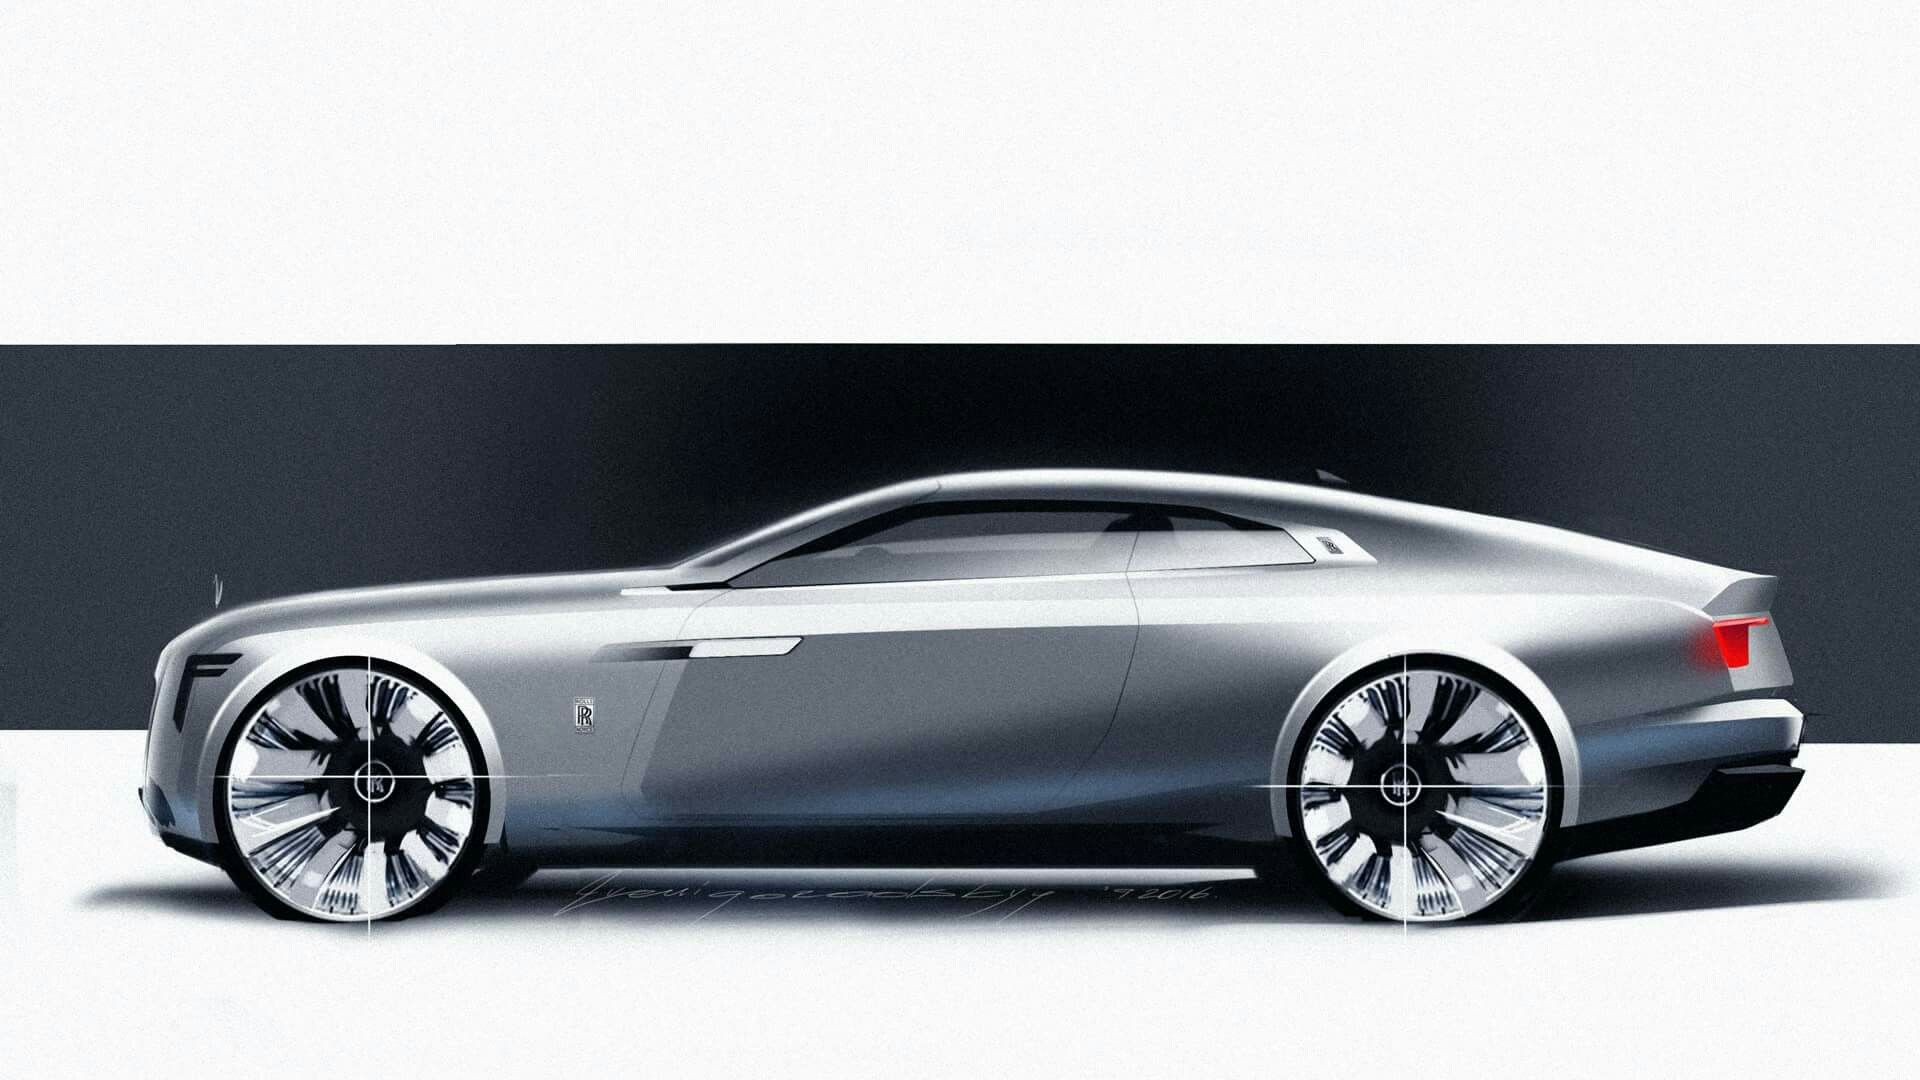 Pin By Rd On Hot Sketches Concepts Cars Car Design Sketch Car